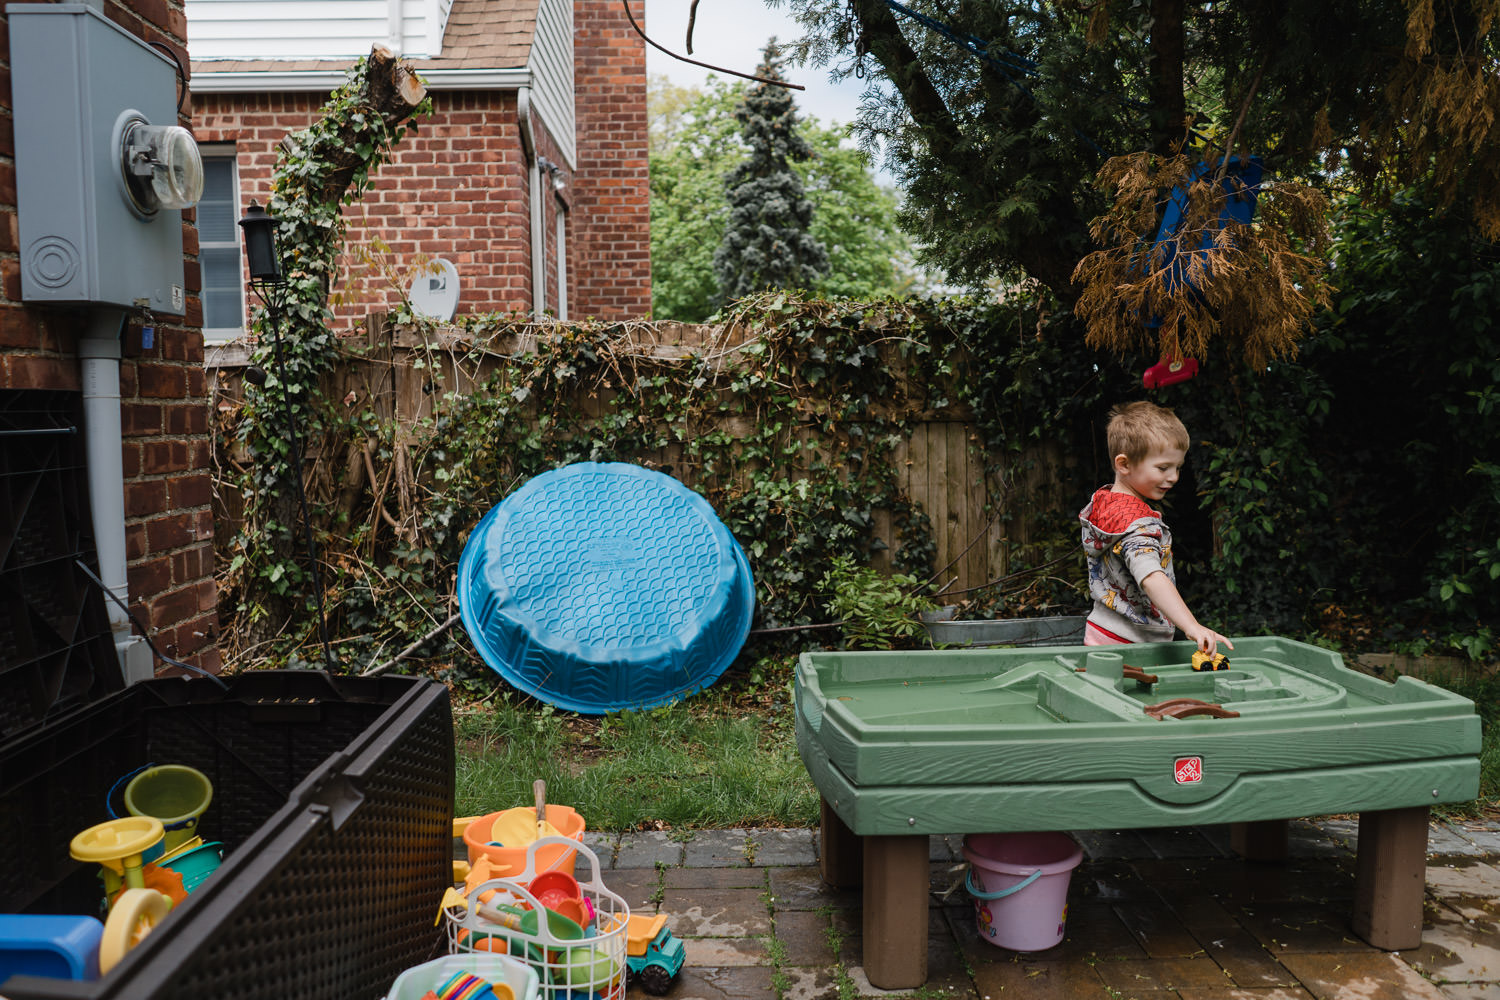 A little boy plays in his backyard.